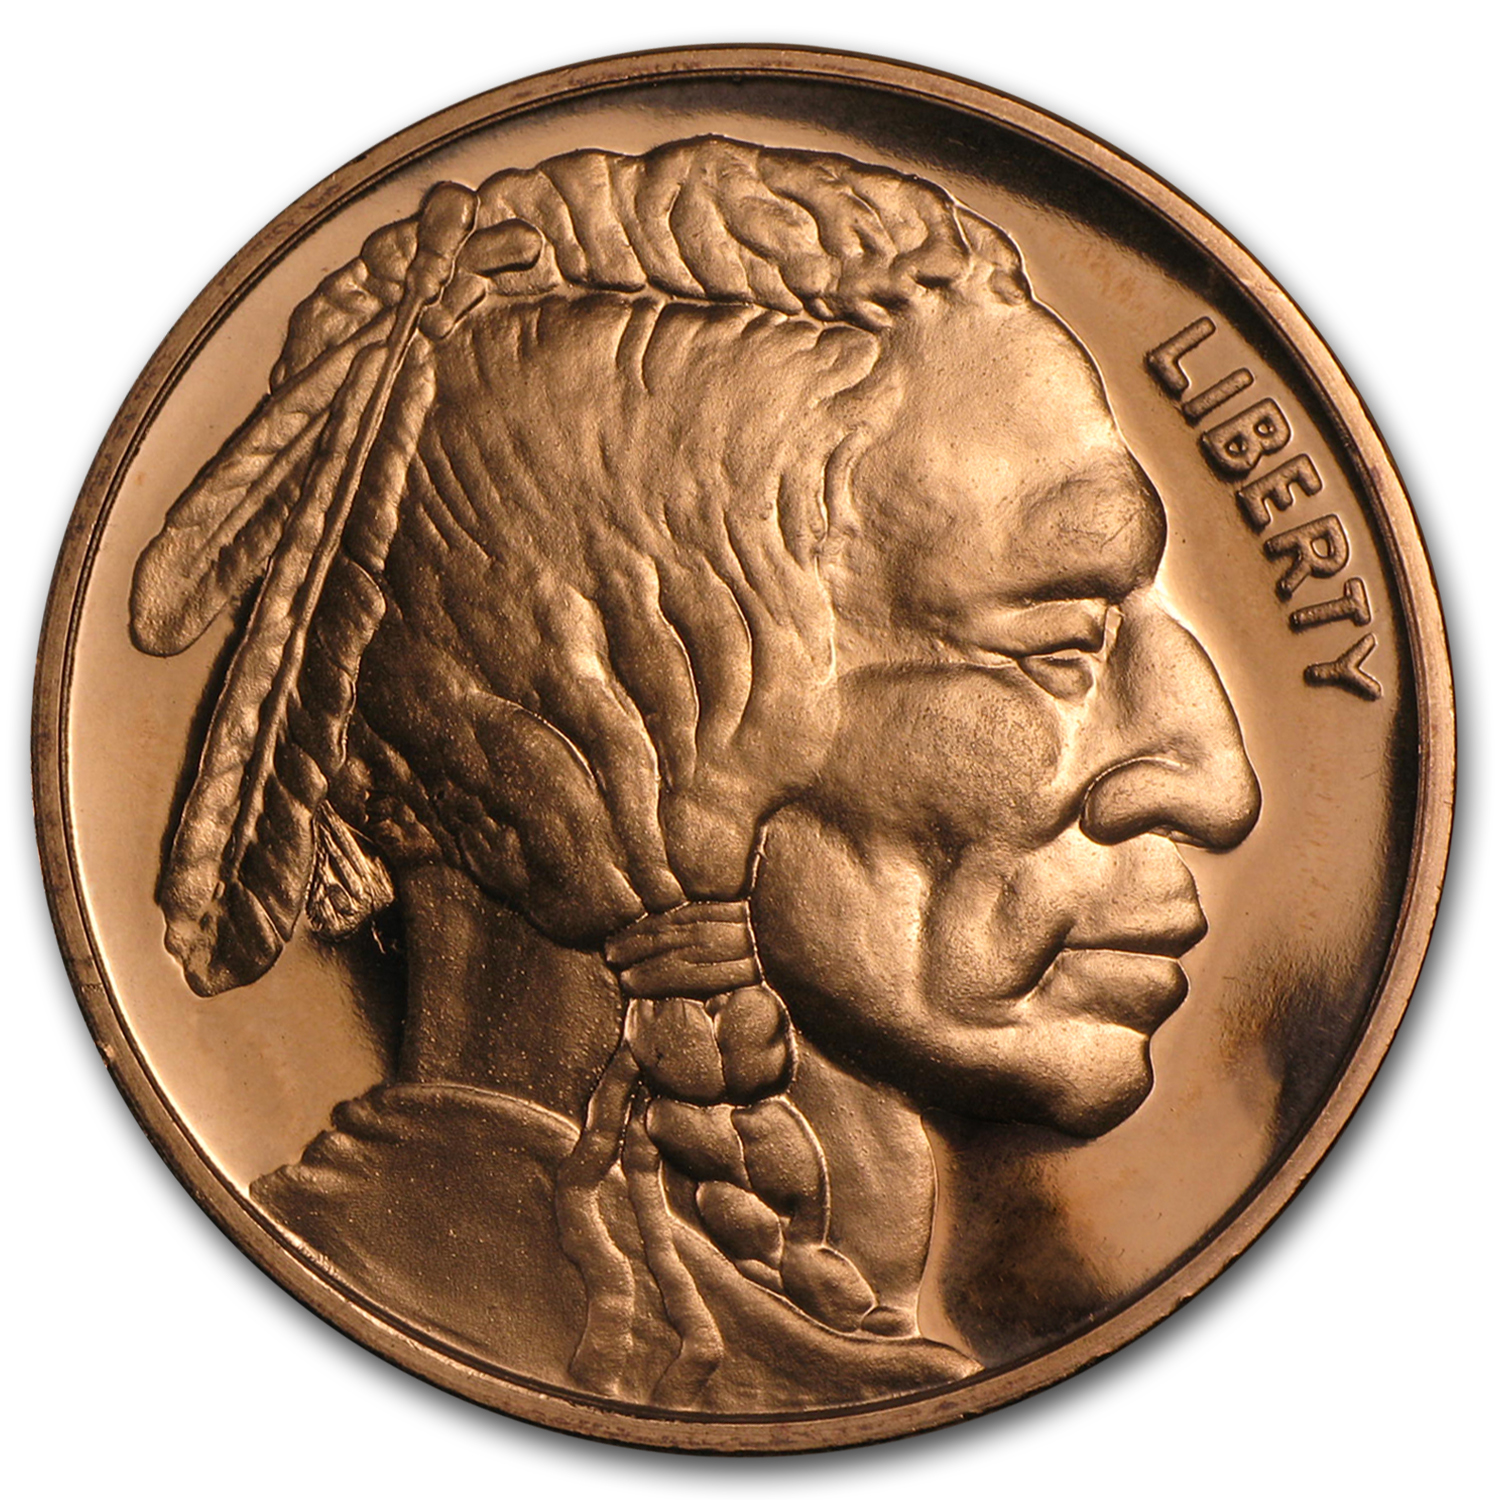 1 oz Copper Round - Indian Head